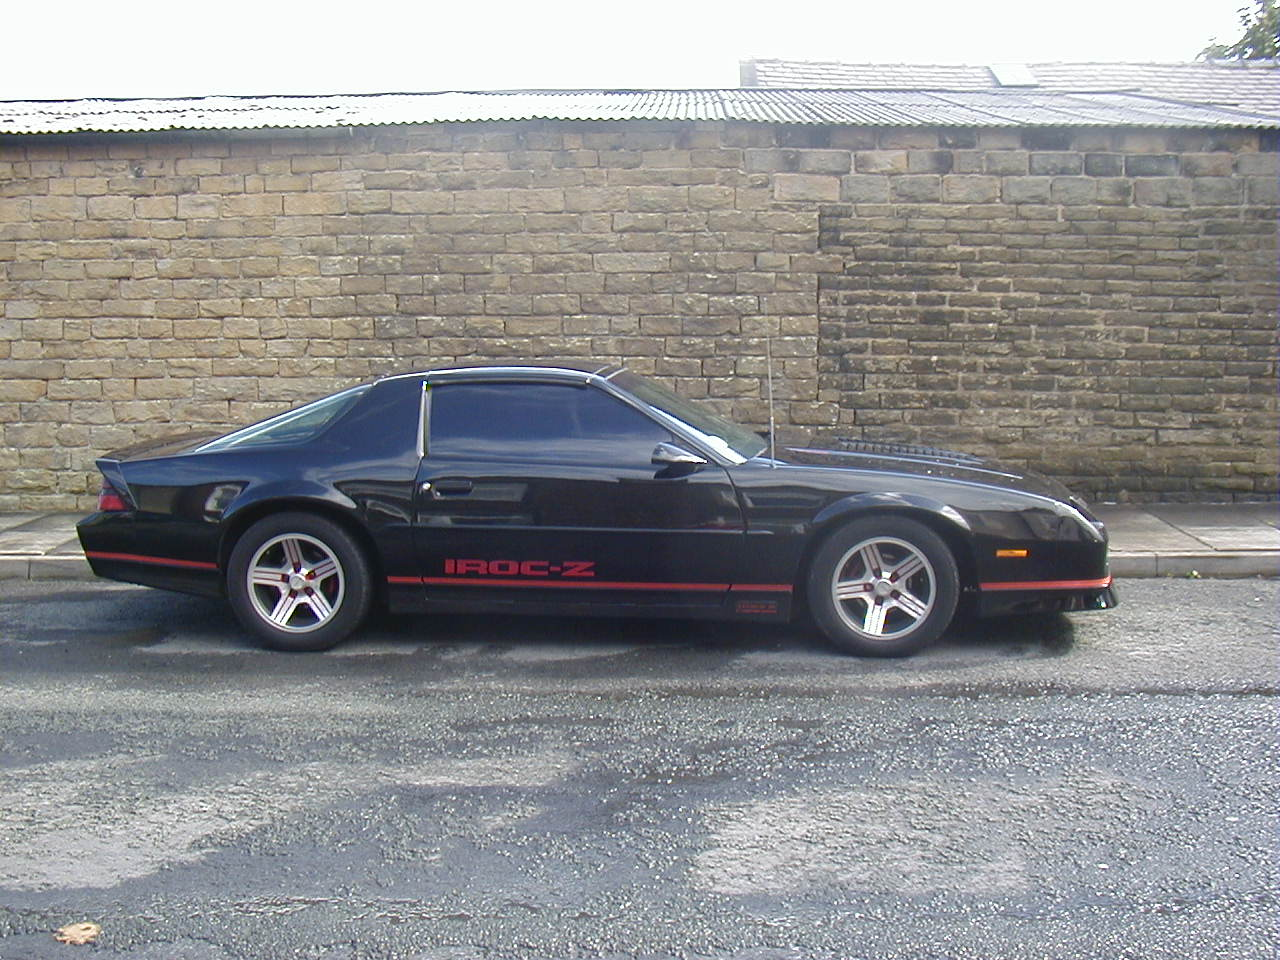 1987 chevrolet camaro iroc z specifications information. Black Bedroom Furniture Sets. Home Design Ideas